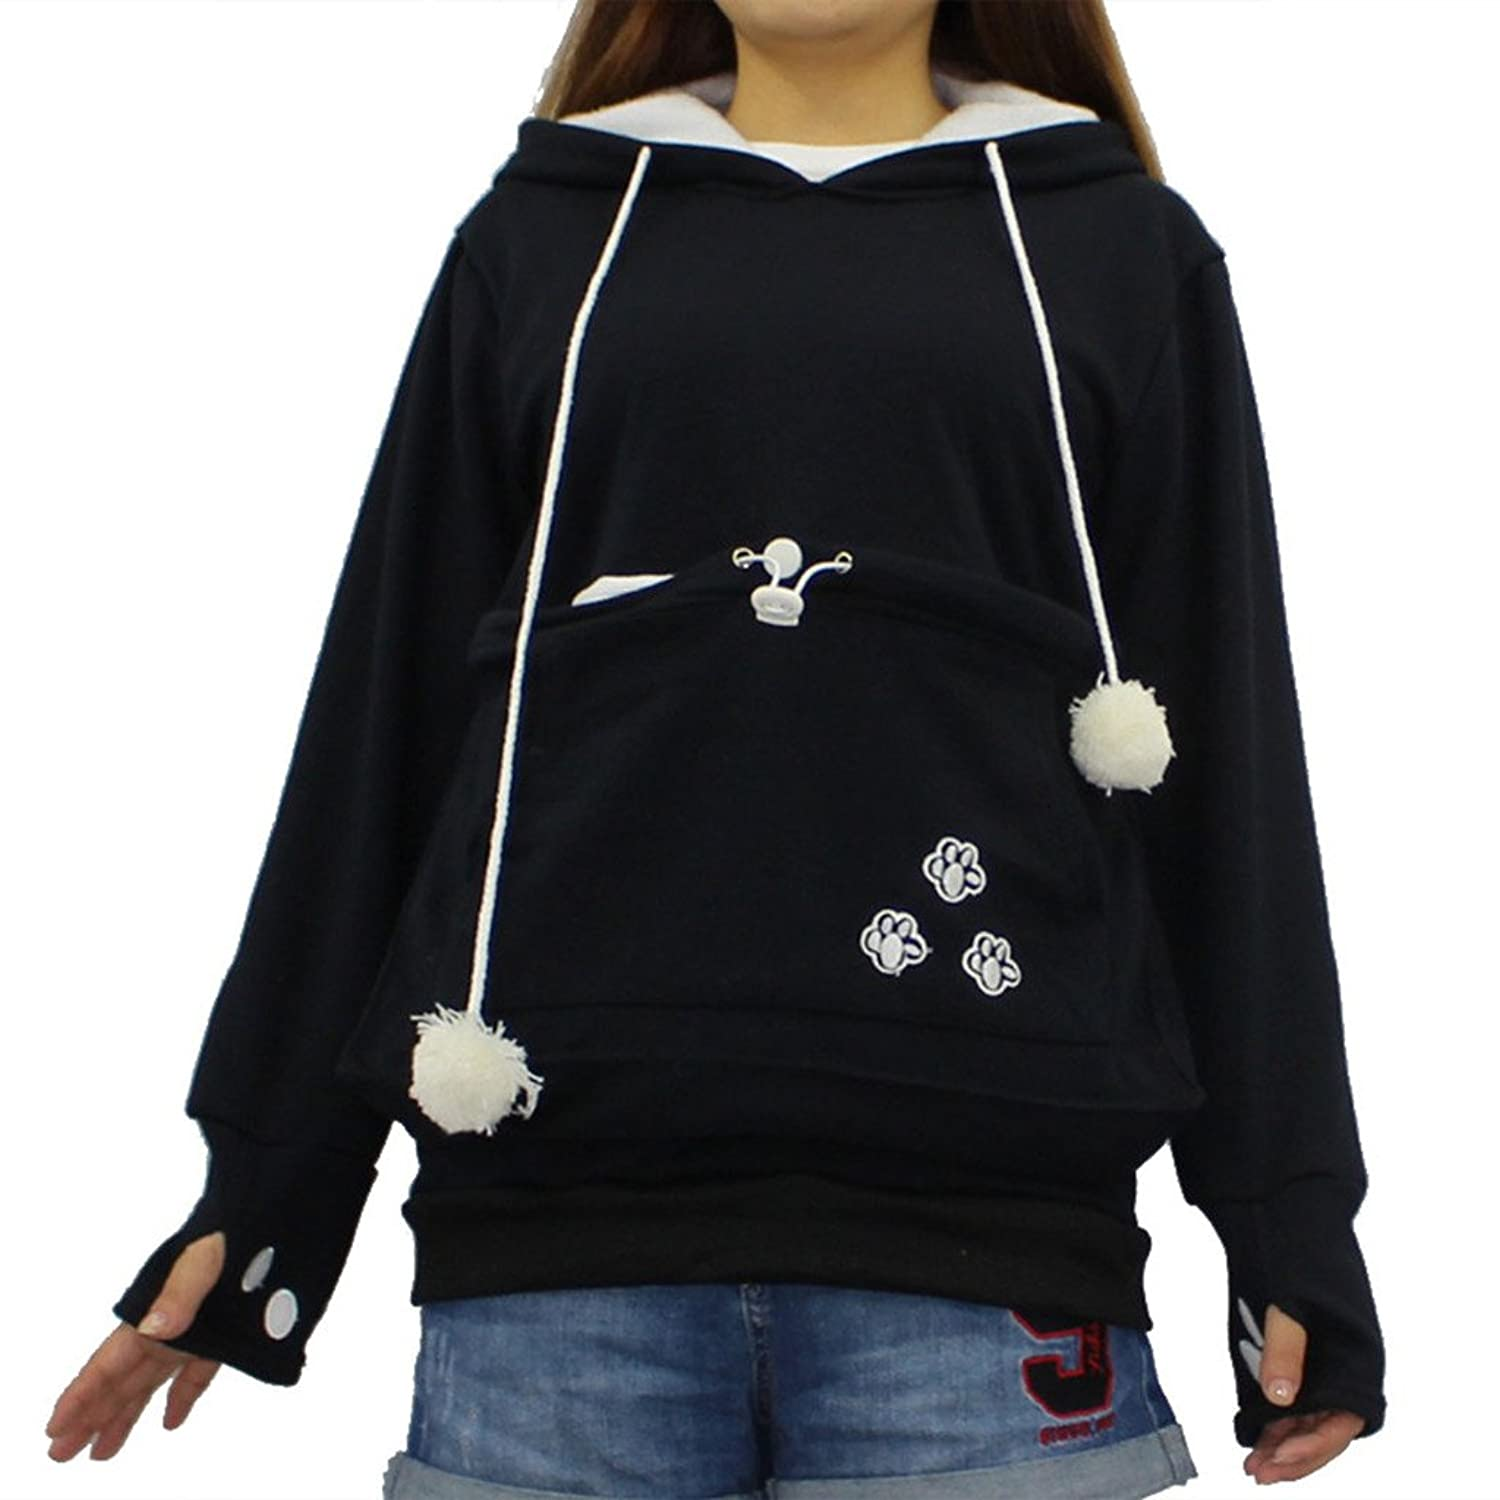 Japanese Style Pullover Big Kangaroo Pouch For Small Cat Dog Pet - Hoodie with kangaroo pouch is the perfect cat accessory